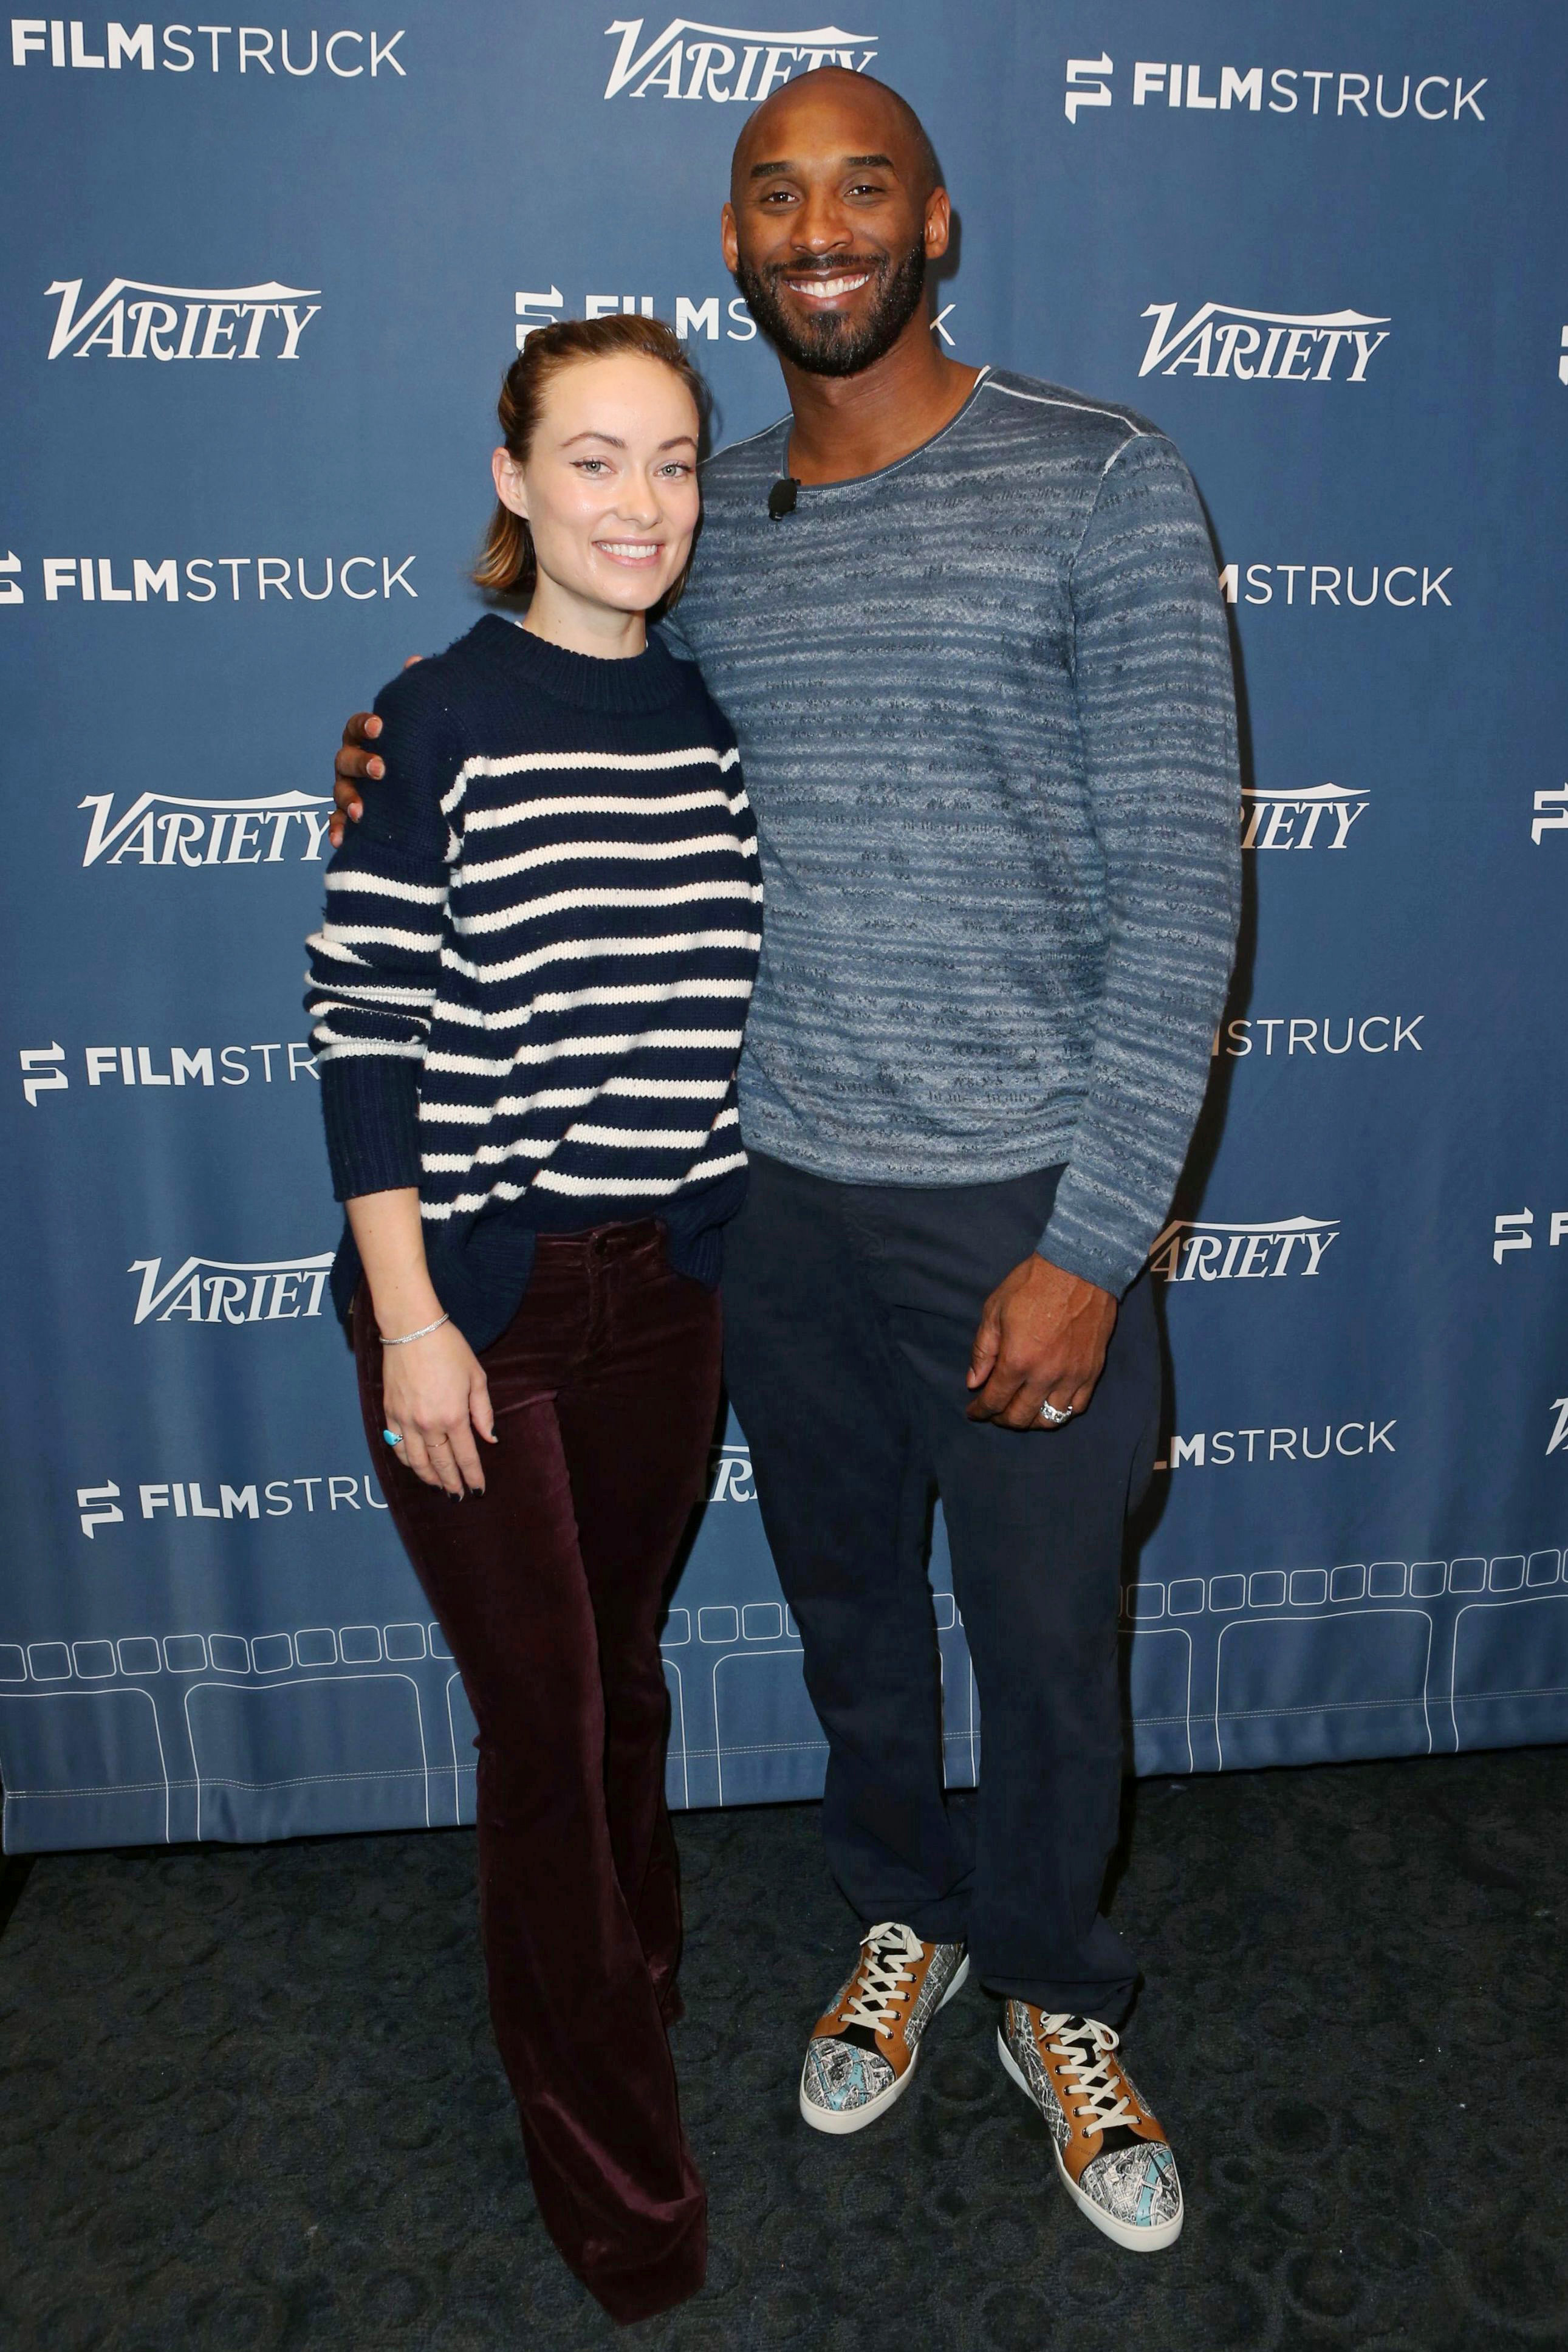 """Olivia Wilde and Kobe Bryant attend the """"Fear Us Women"""" and """"Dear Basketball"""" Variety Screening Series presented by FilmStruck in Los Angeles on Nov. 14, 2017."""